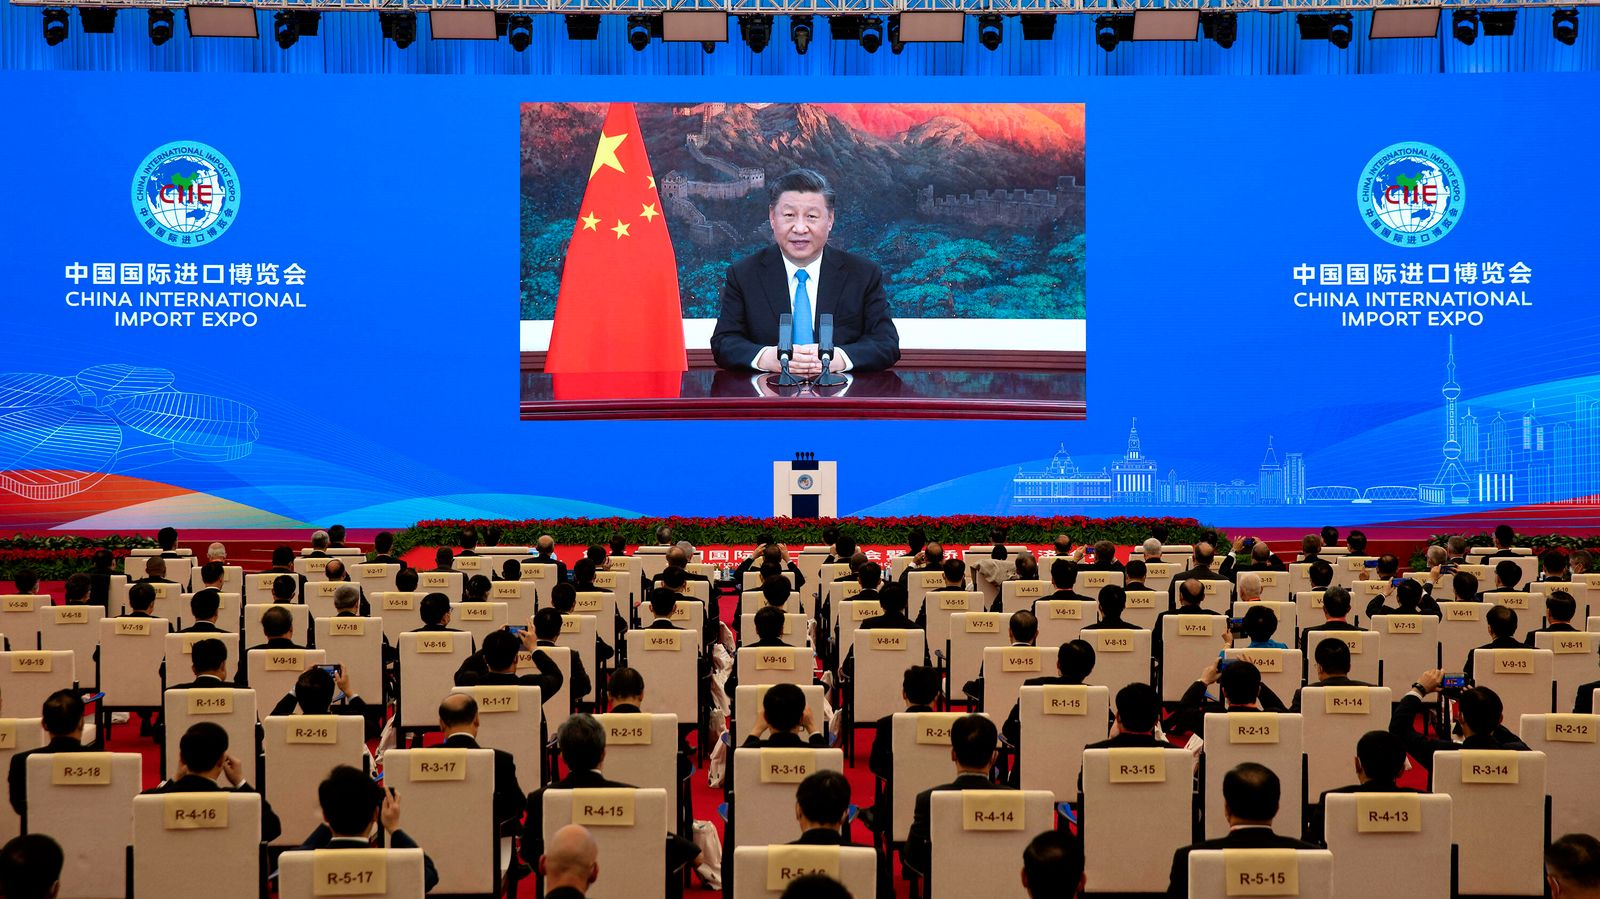 (201104) -- SHANGHAI, Nov. 4, 2020 -- Chinese President Xi Jinping delivers a keynote speech via video at the opening ce